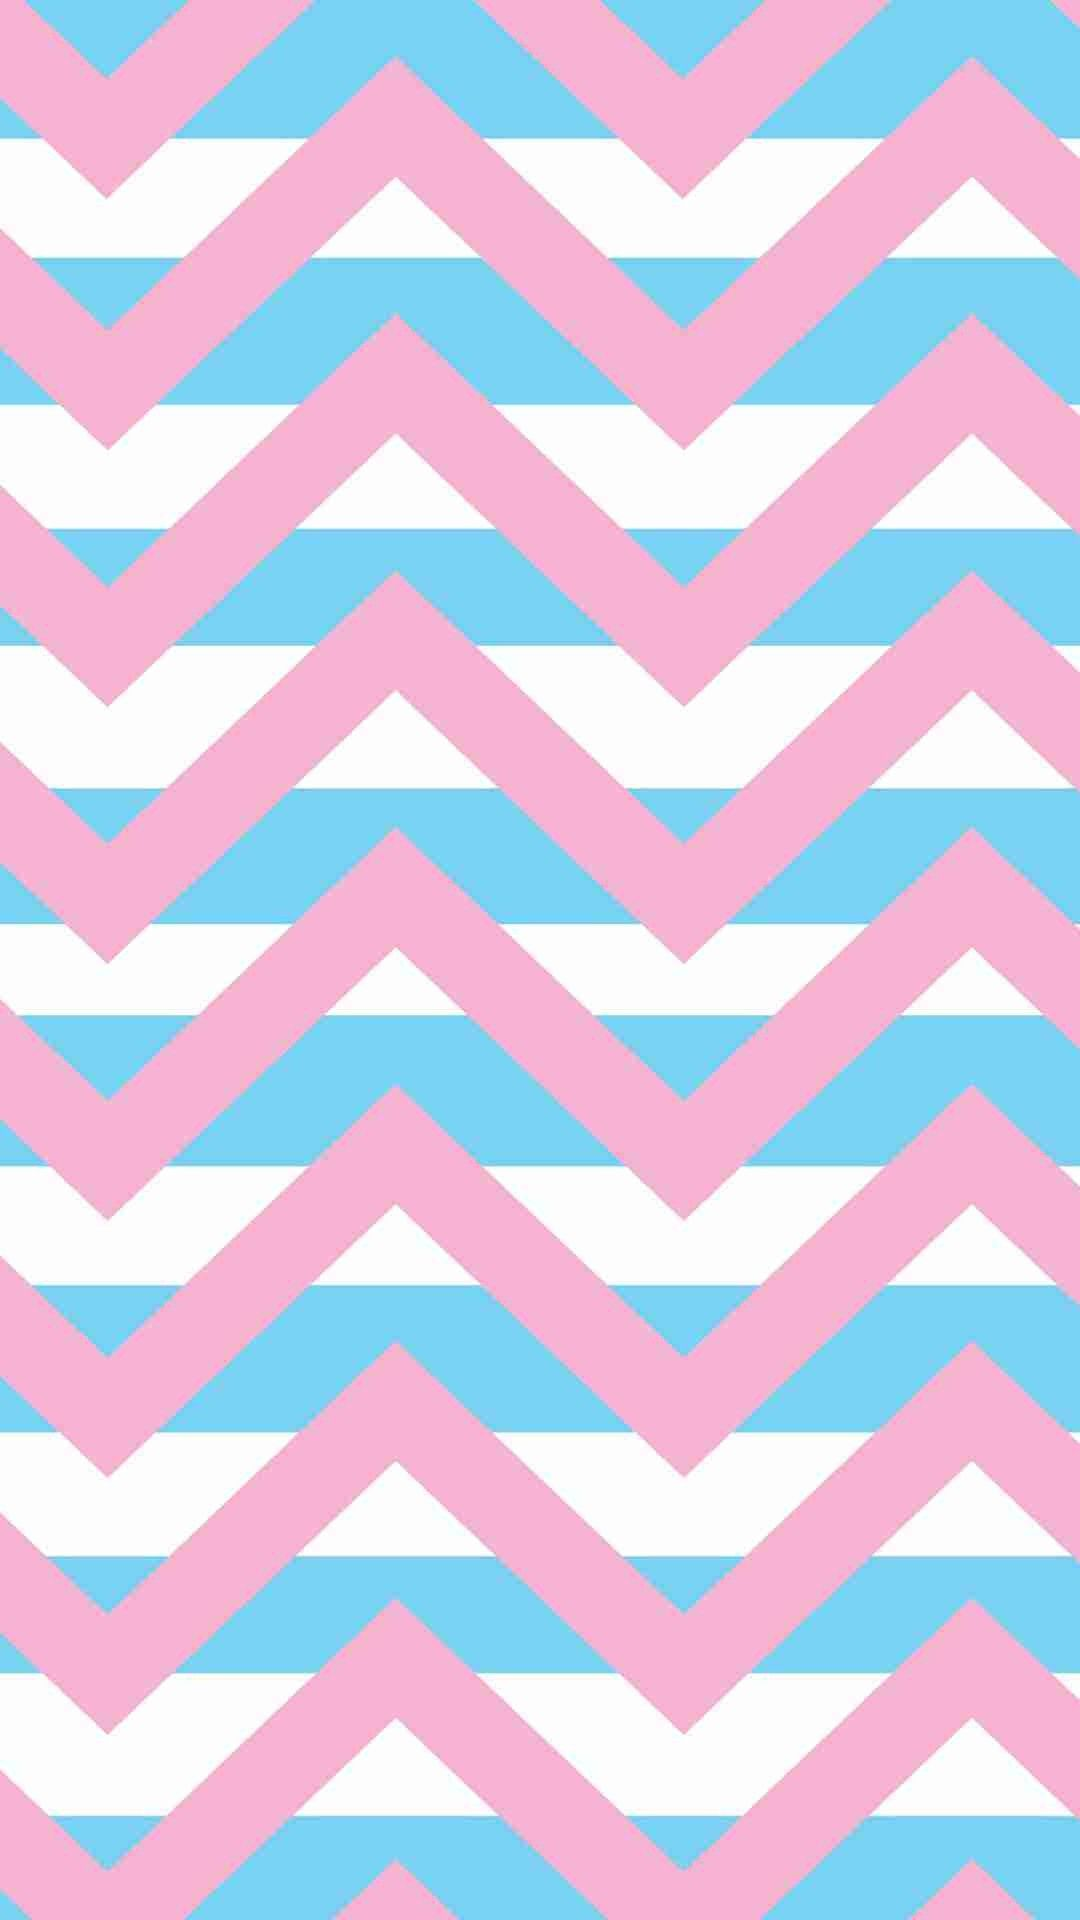 Iphone 6 plus wallpaper that you should know fashion blog pastel chevron pink and blue iphone 6 plus wallpaper for girls pretty striped pattern voltagebd Images